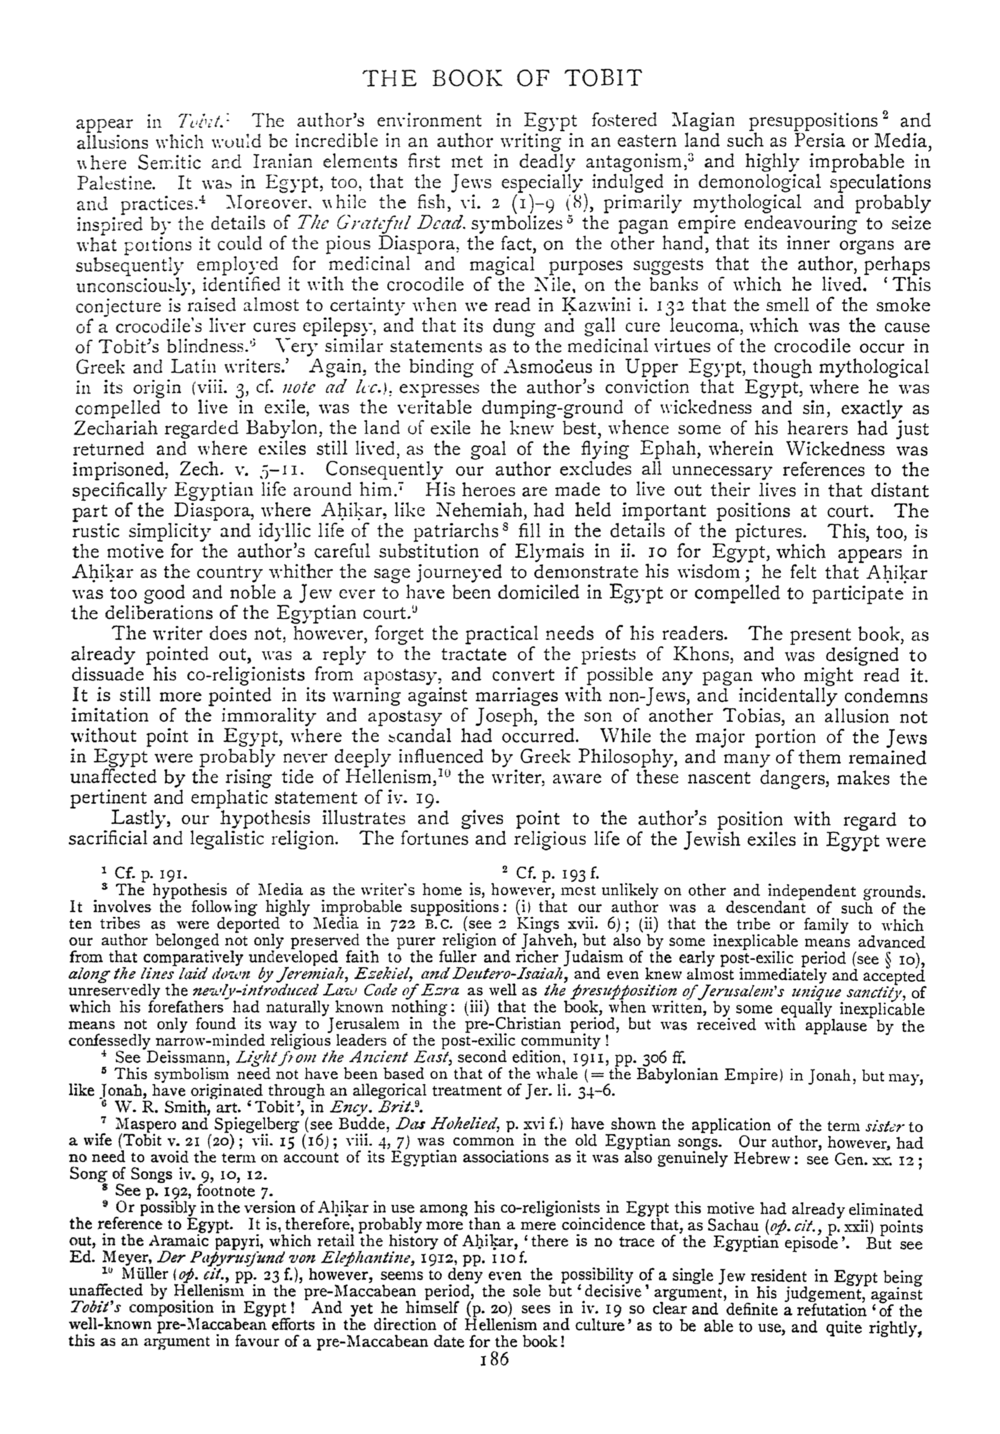 Image of page 186